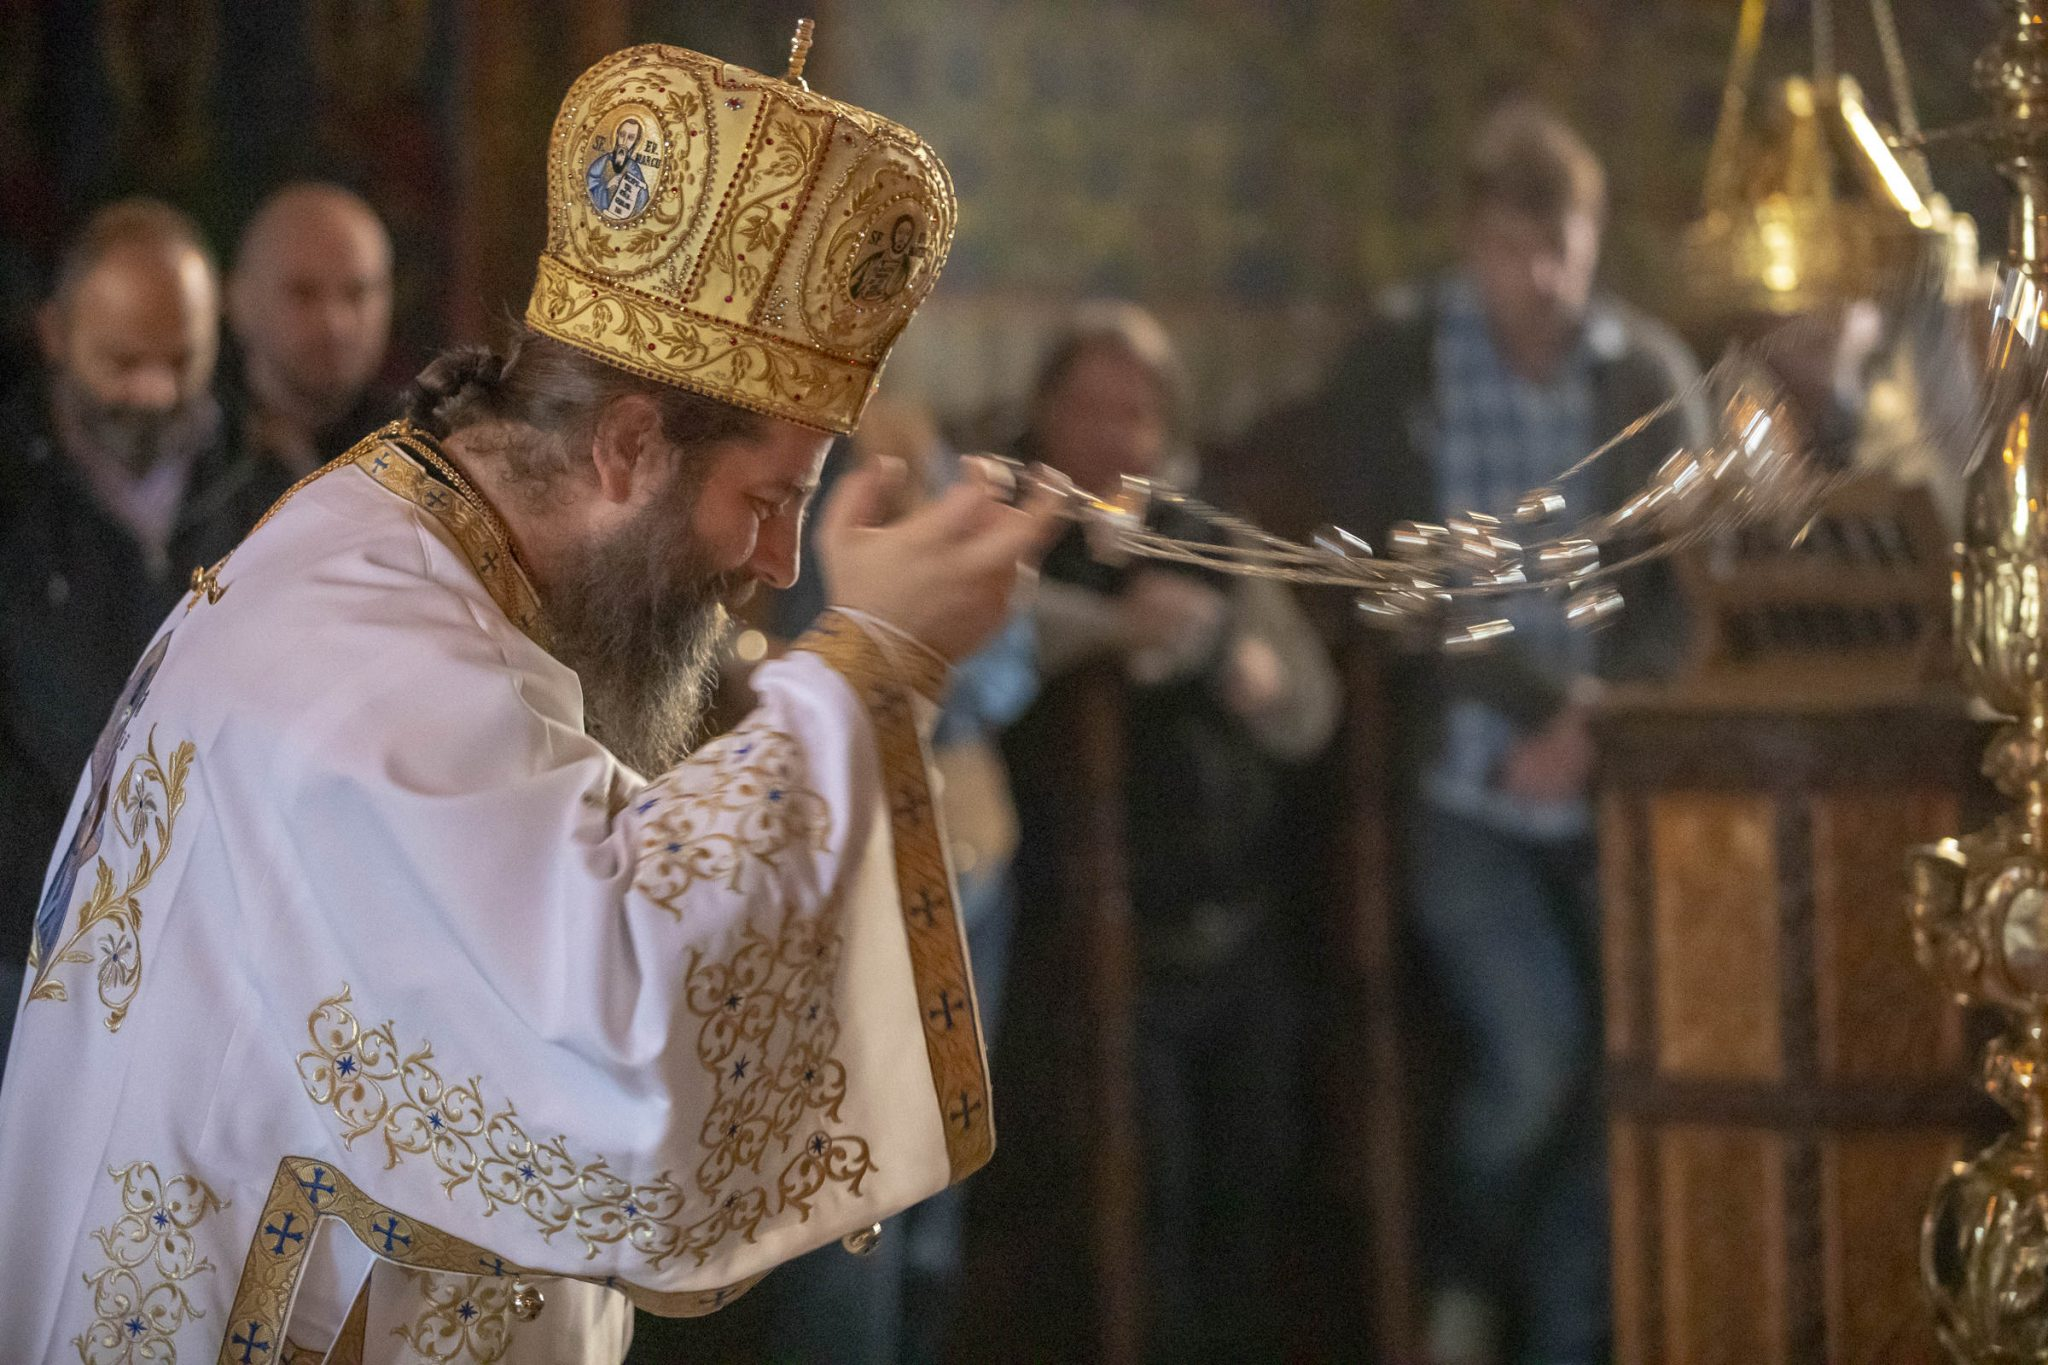 How to use loneliness - a photo journal from a Divine Liturgy